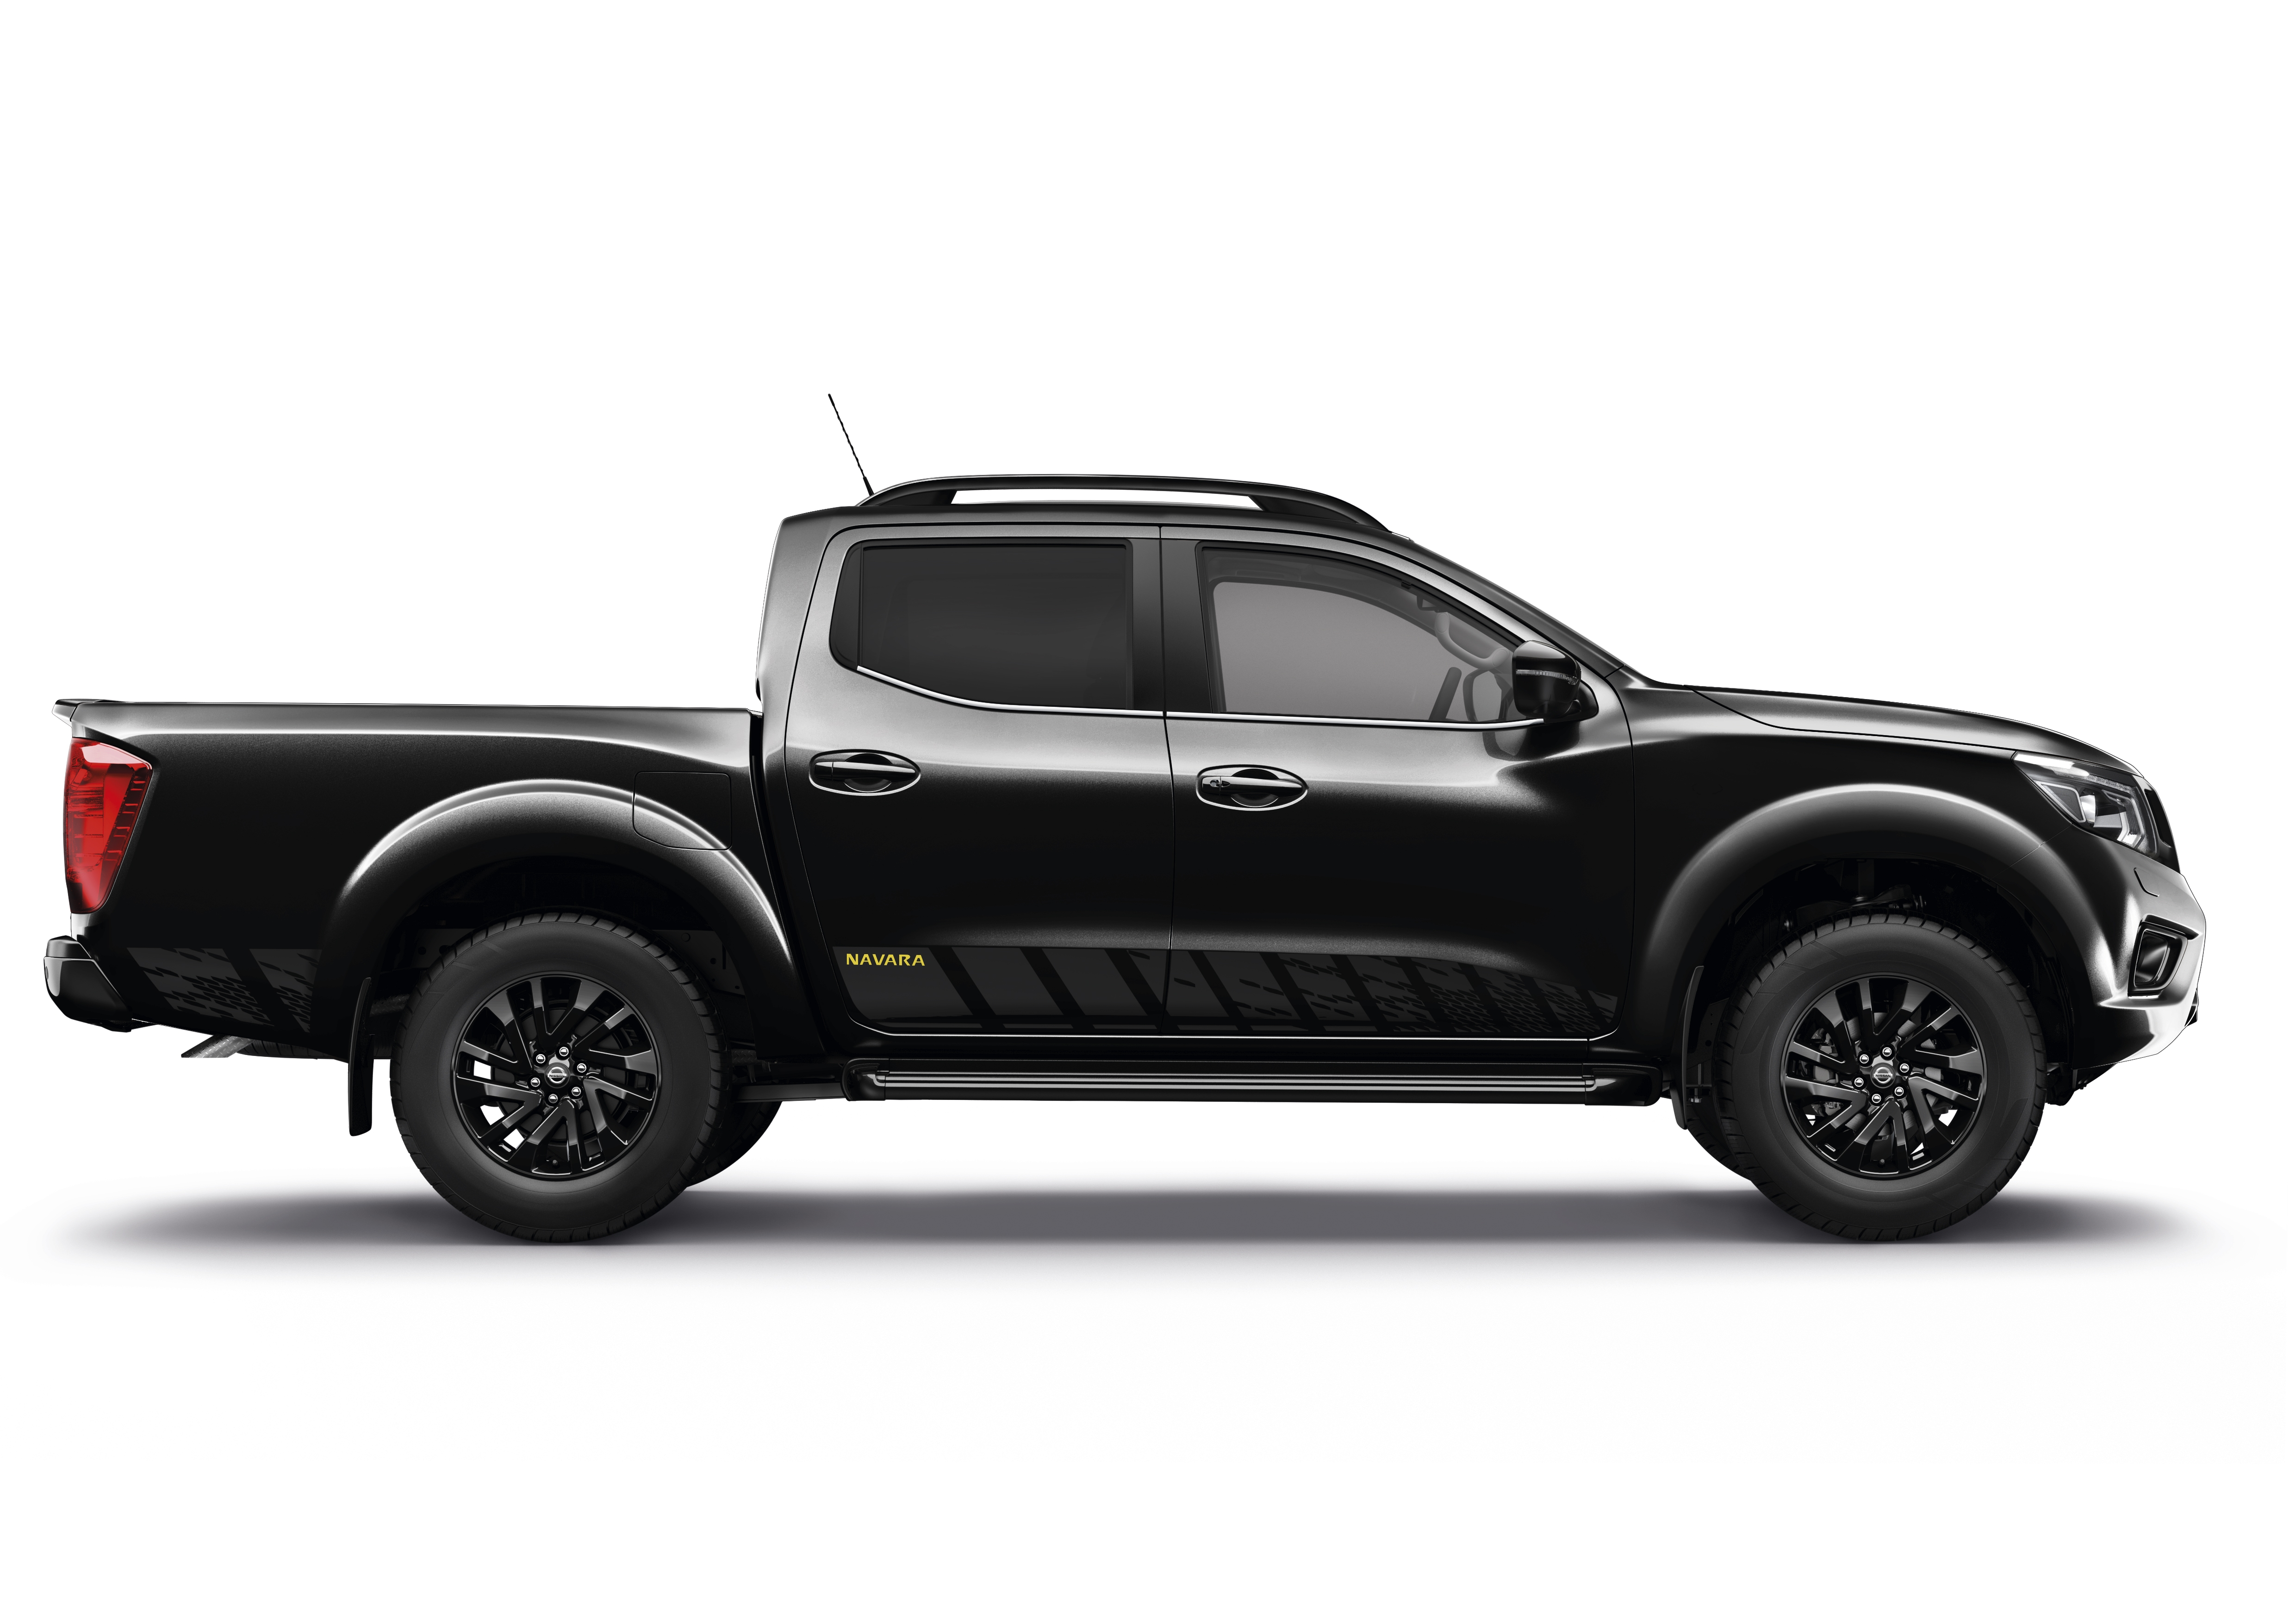 nissan nouvelle finition pour le pickup navara. Black Bedroom Furniture Sets. Home Design Ideas